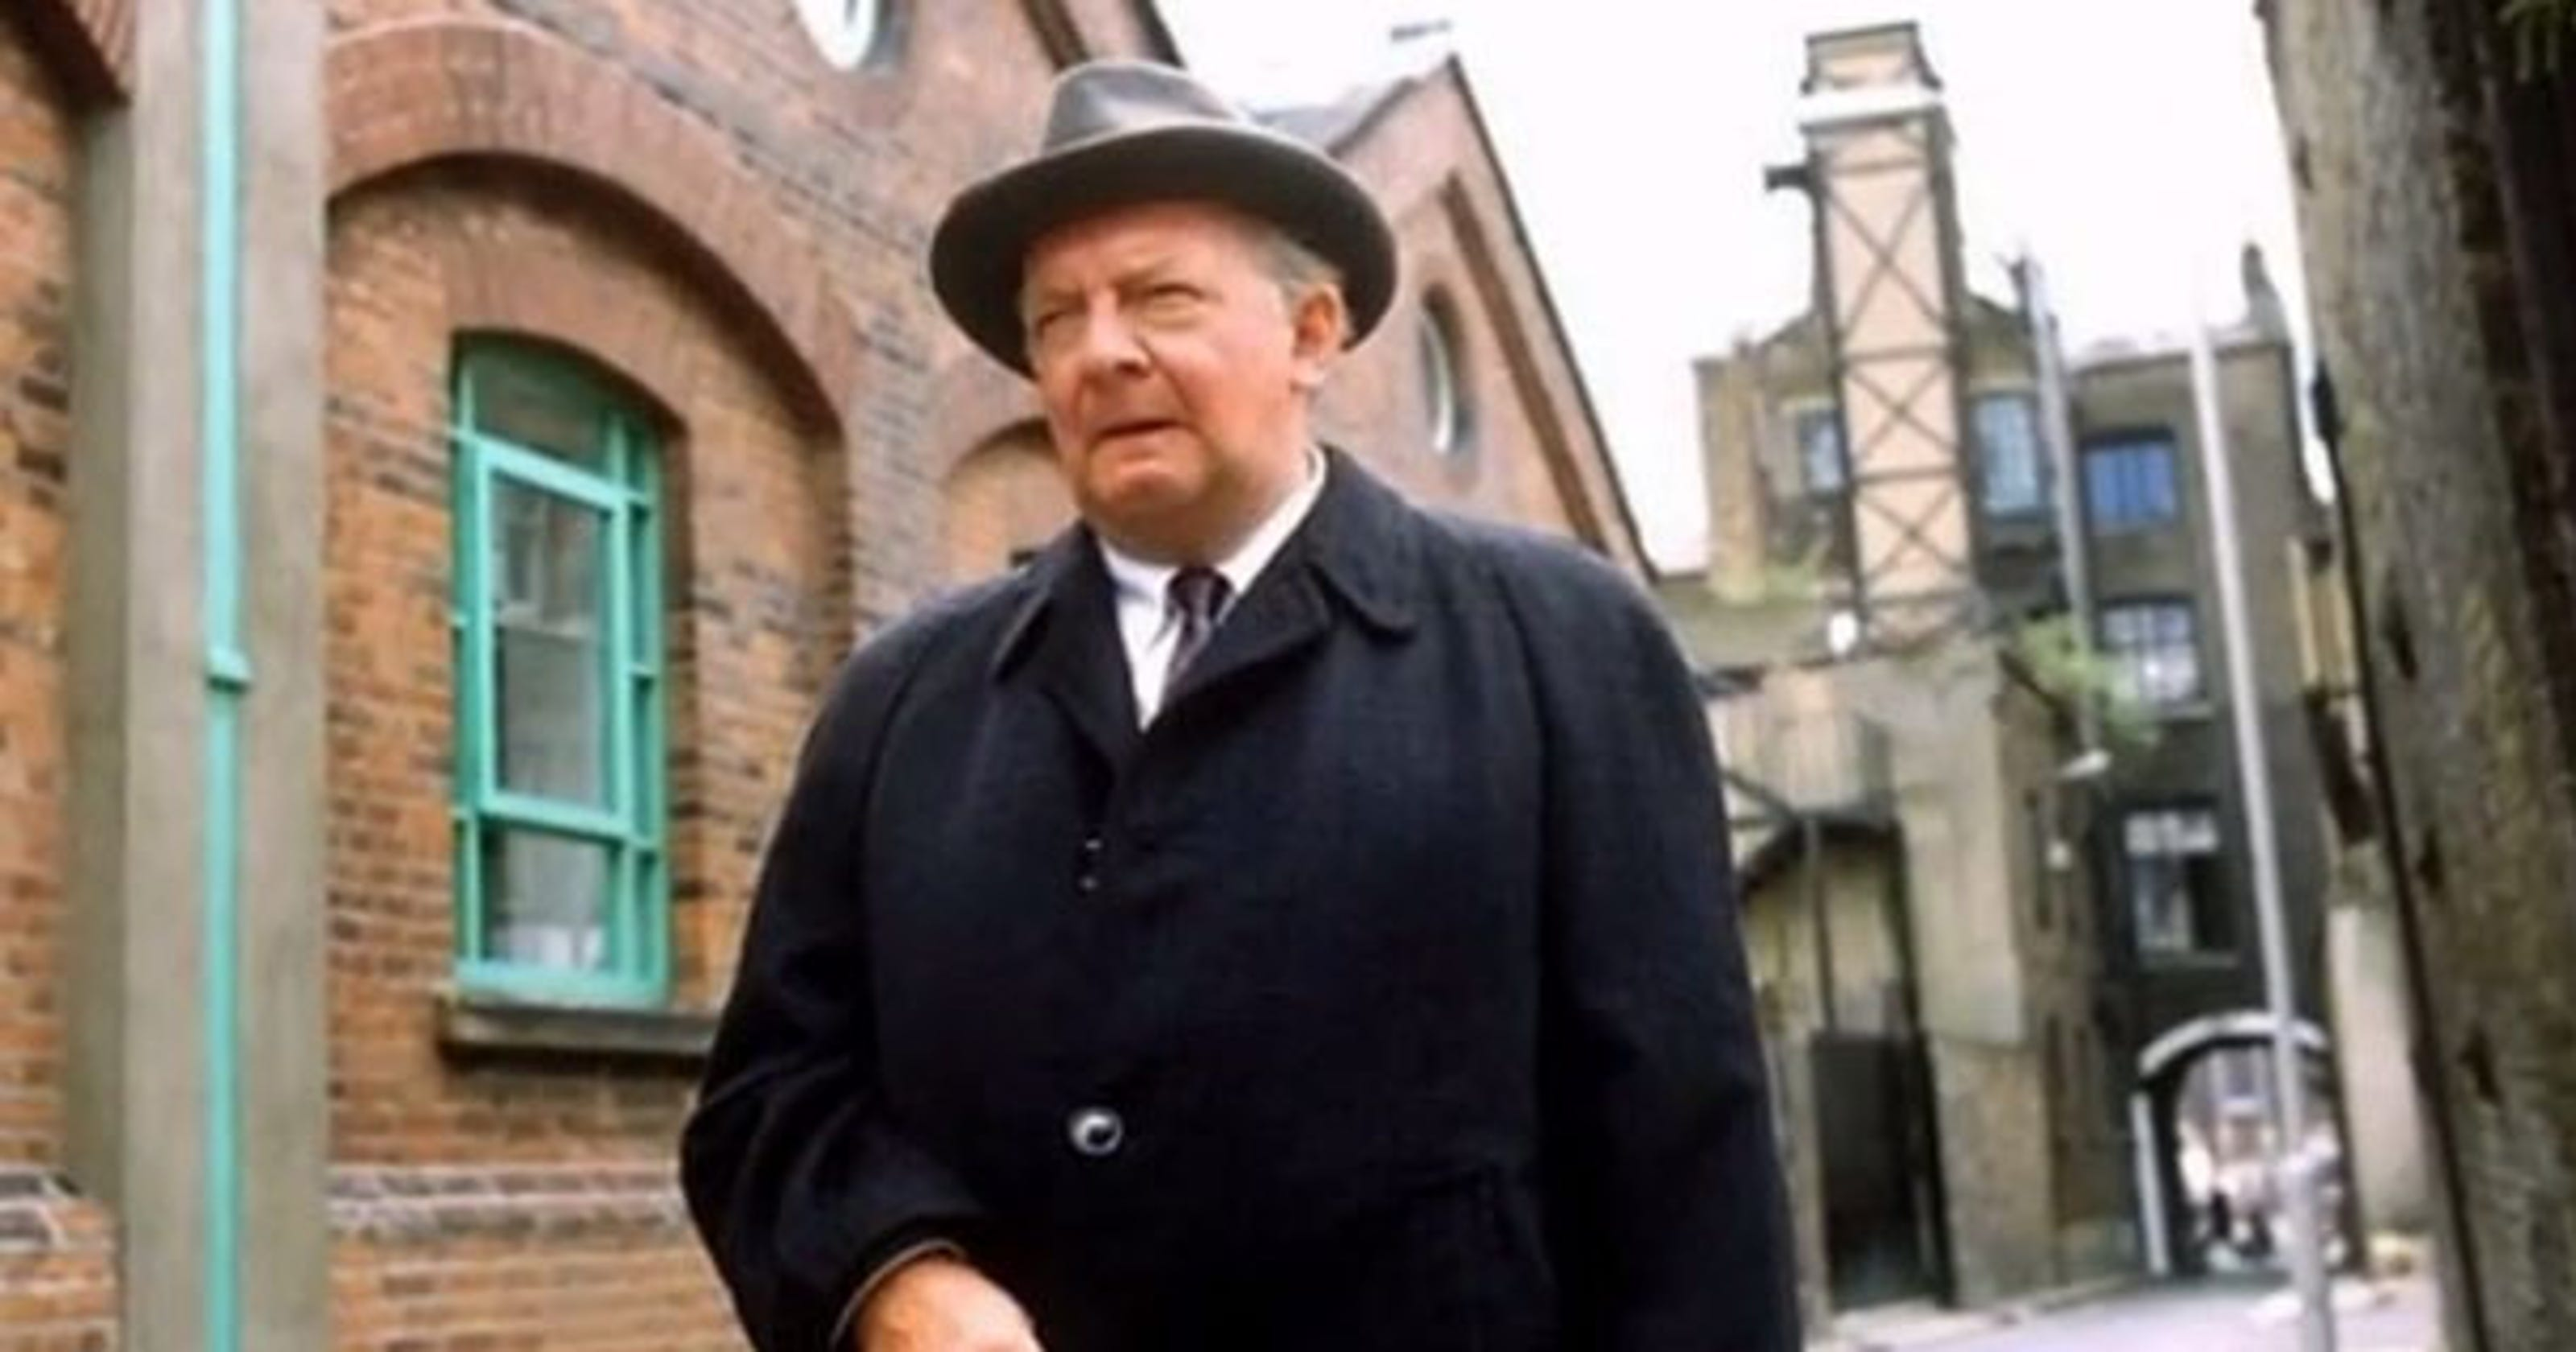 427e98337c25a  Harry Potter  actor David Ryall dies at 79